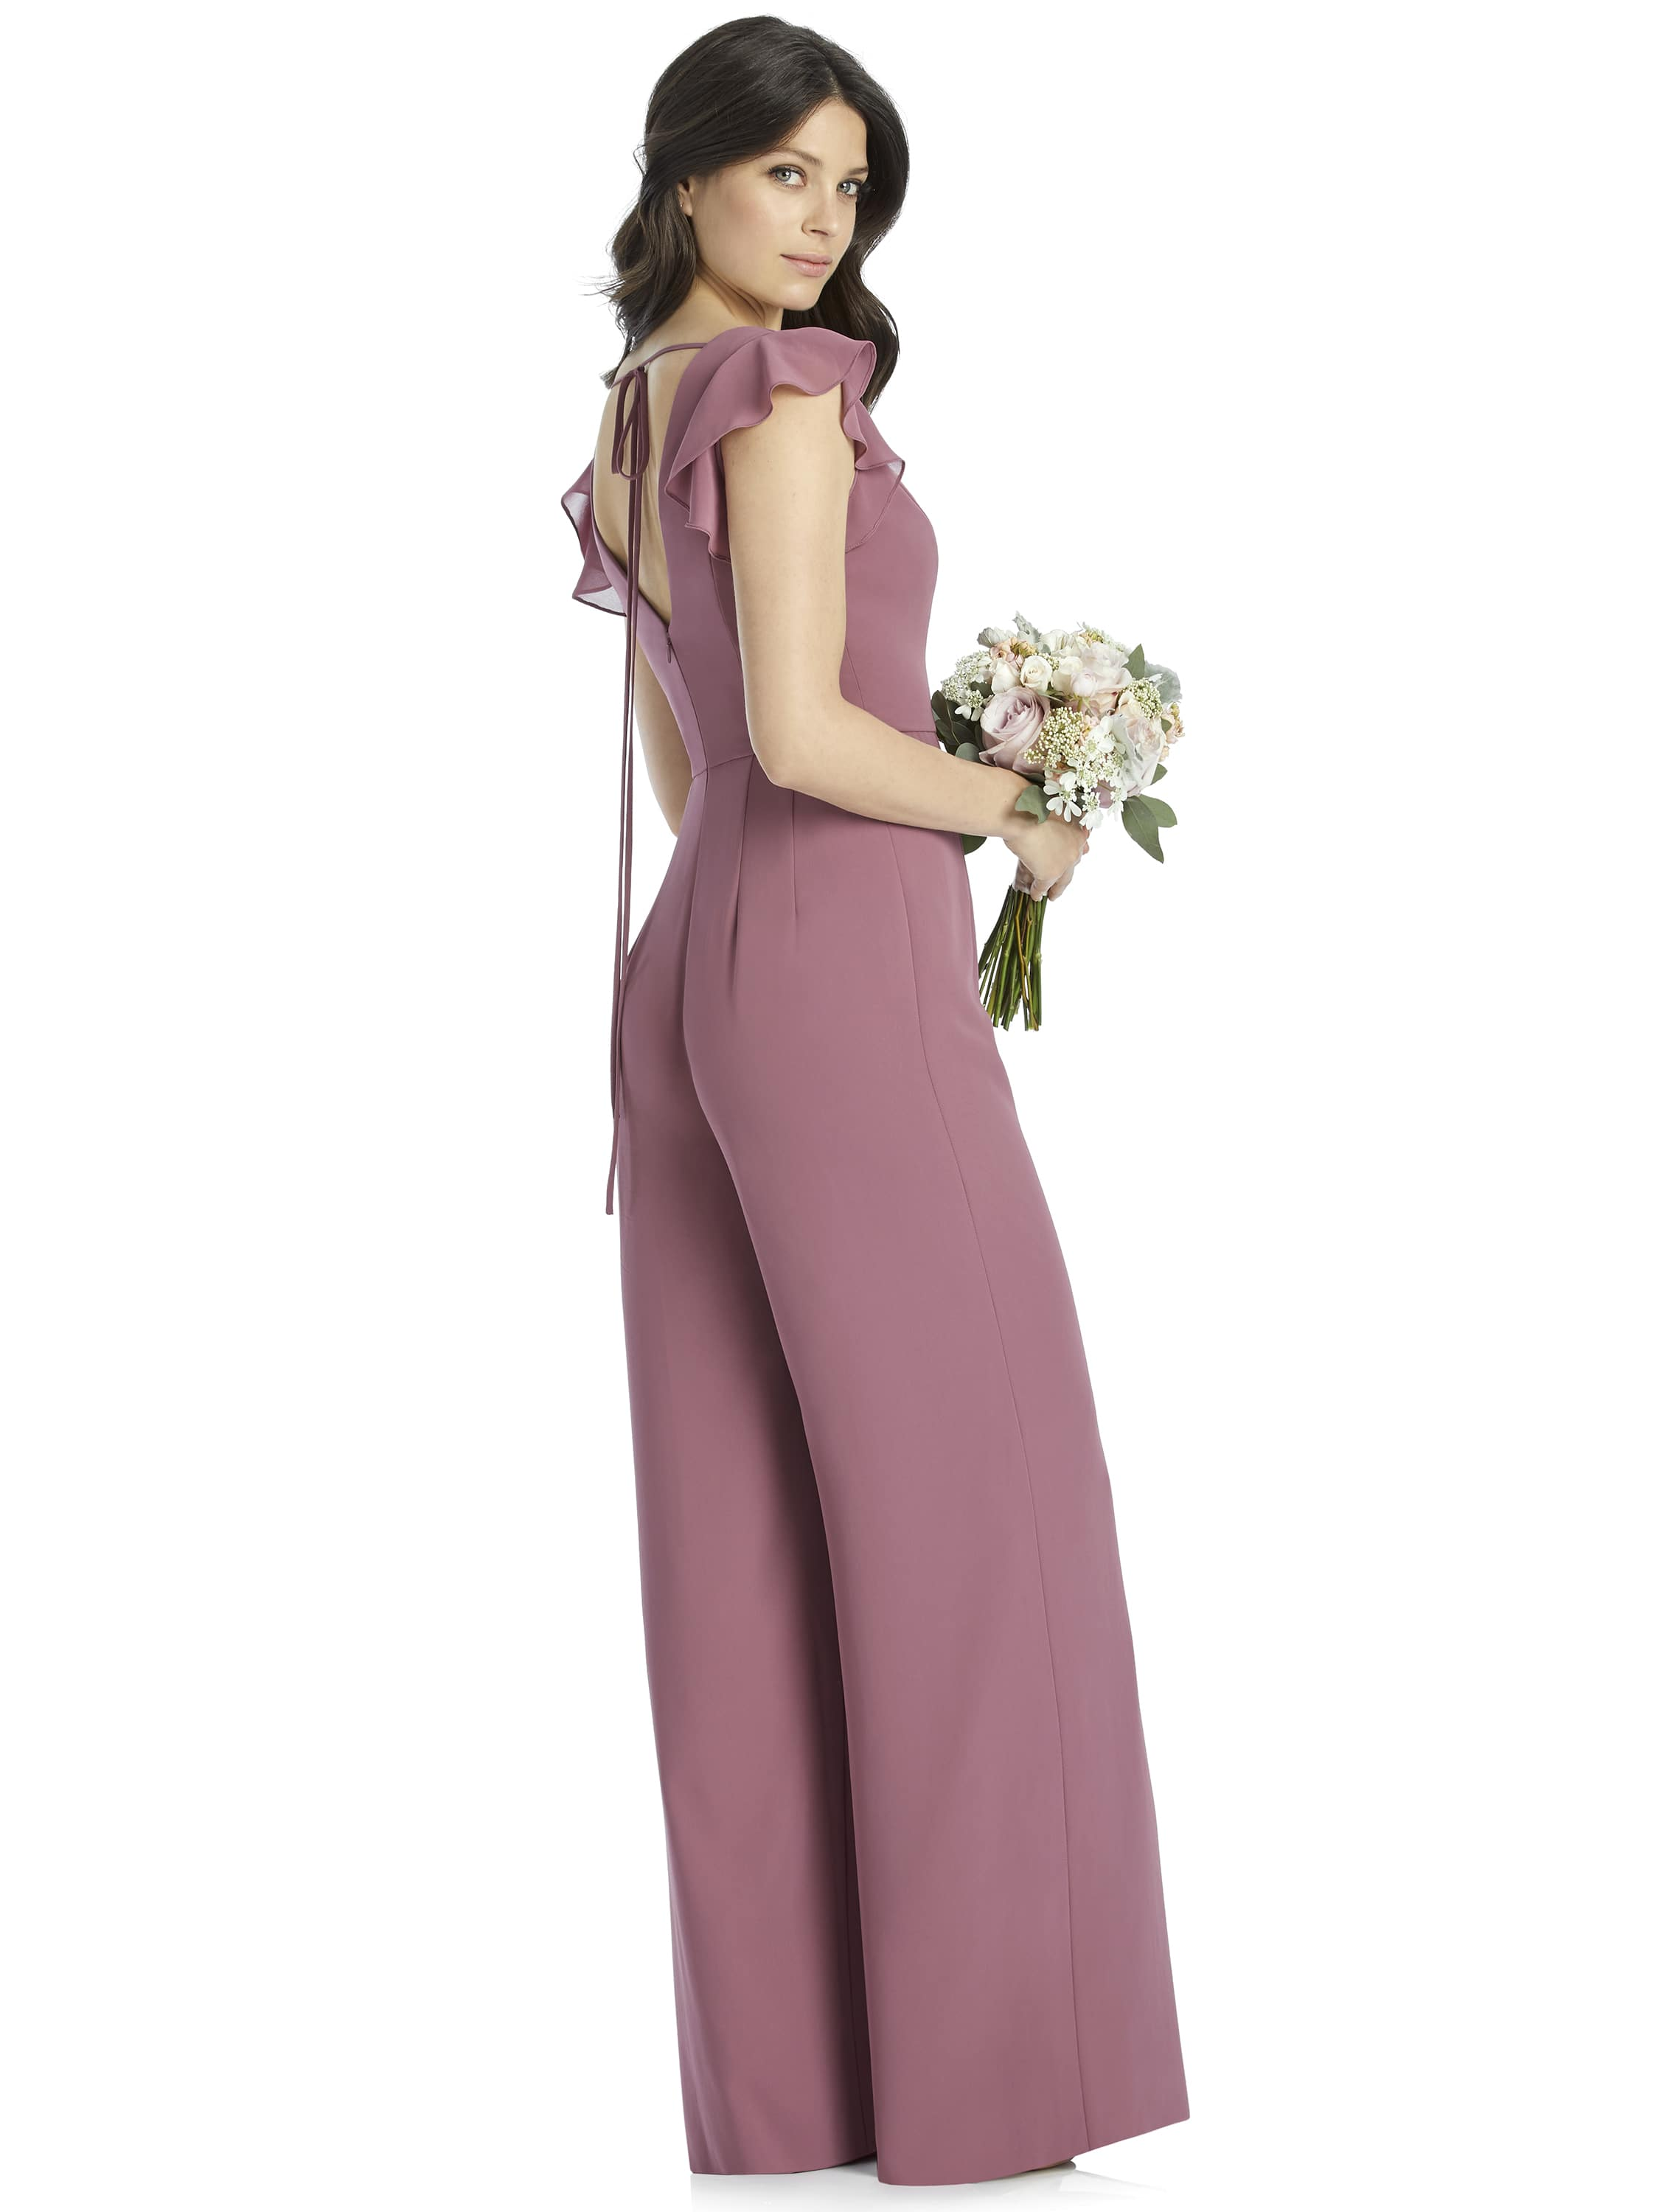 Side view of jumpsuit style 3047 by Dessy Collection in English Rose chiffon for bridesmaids